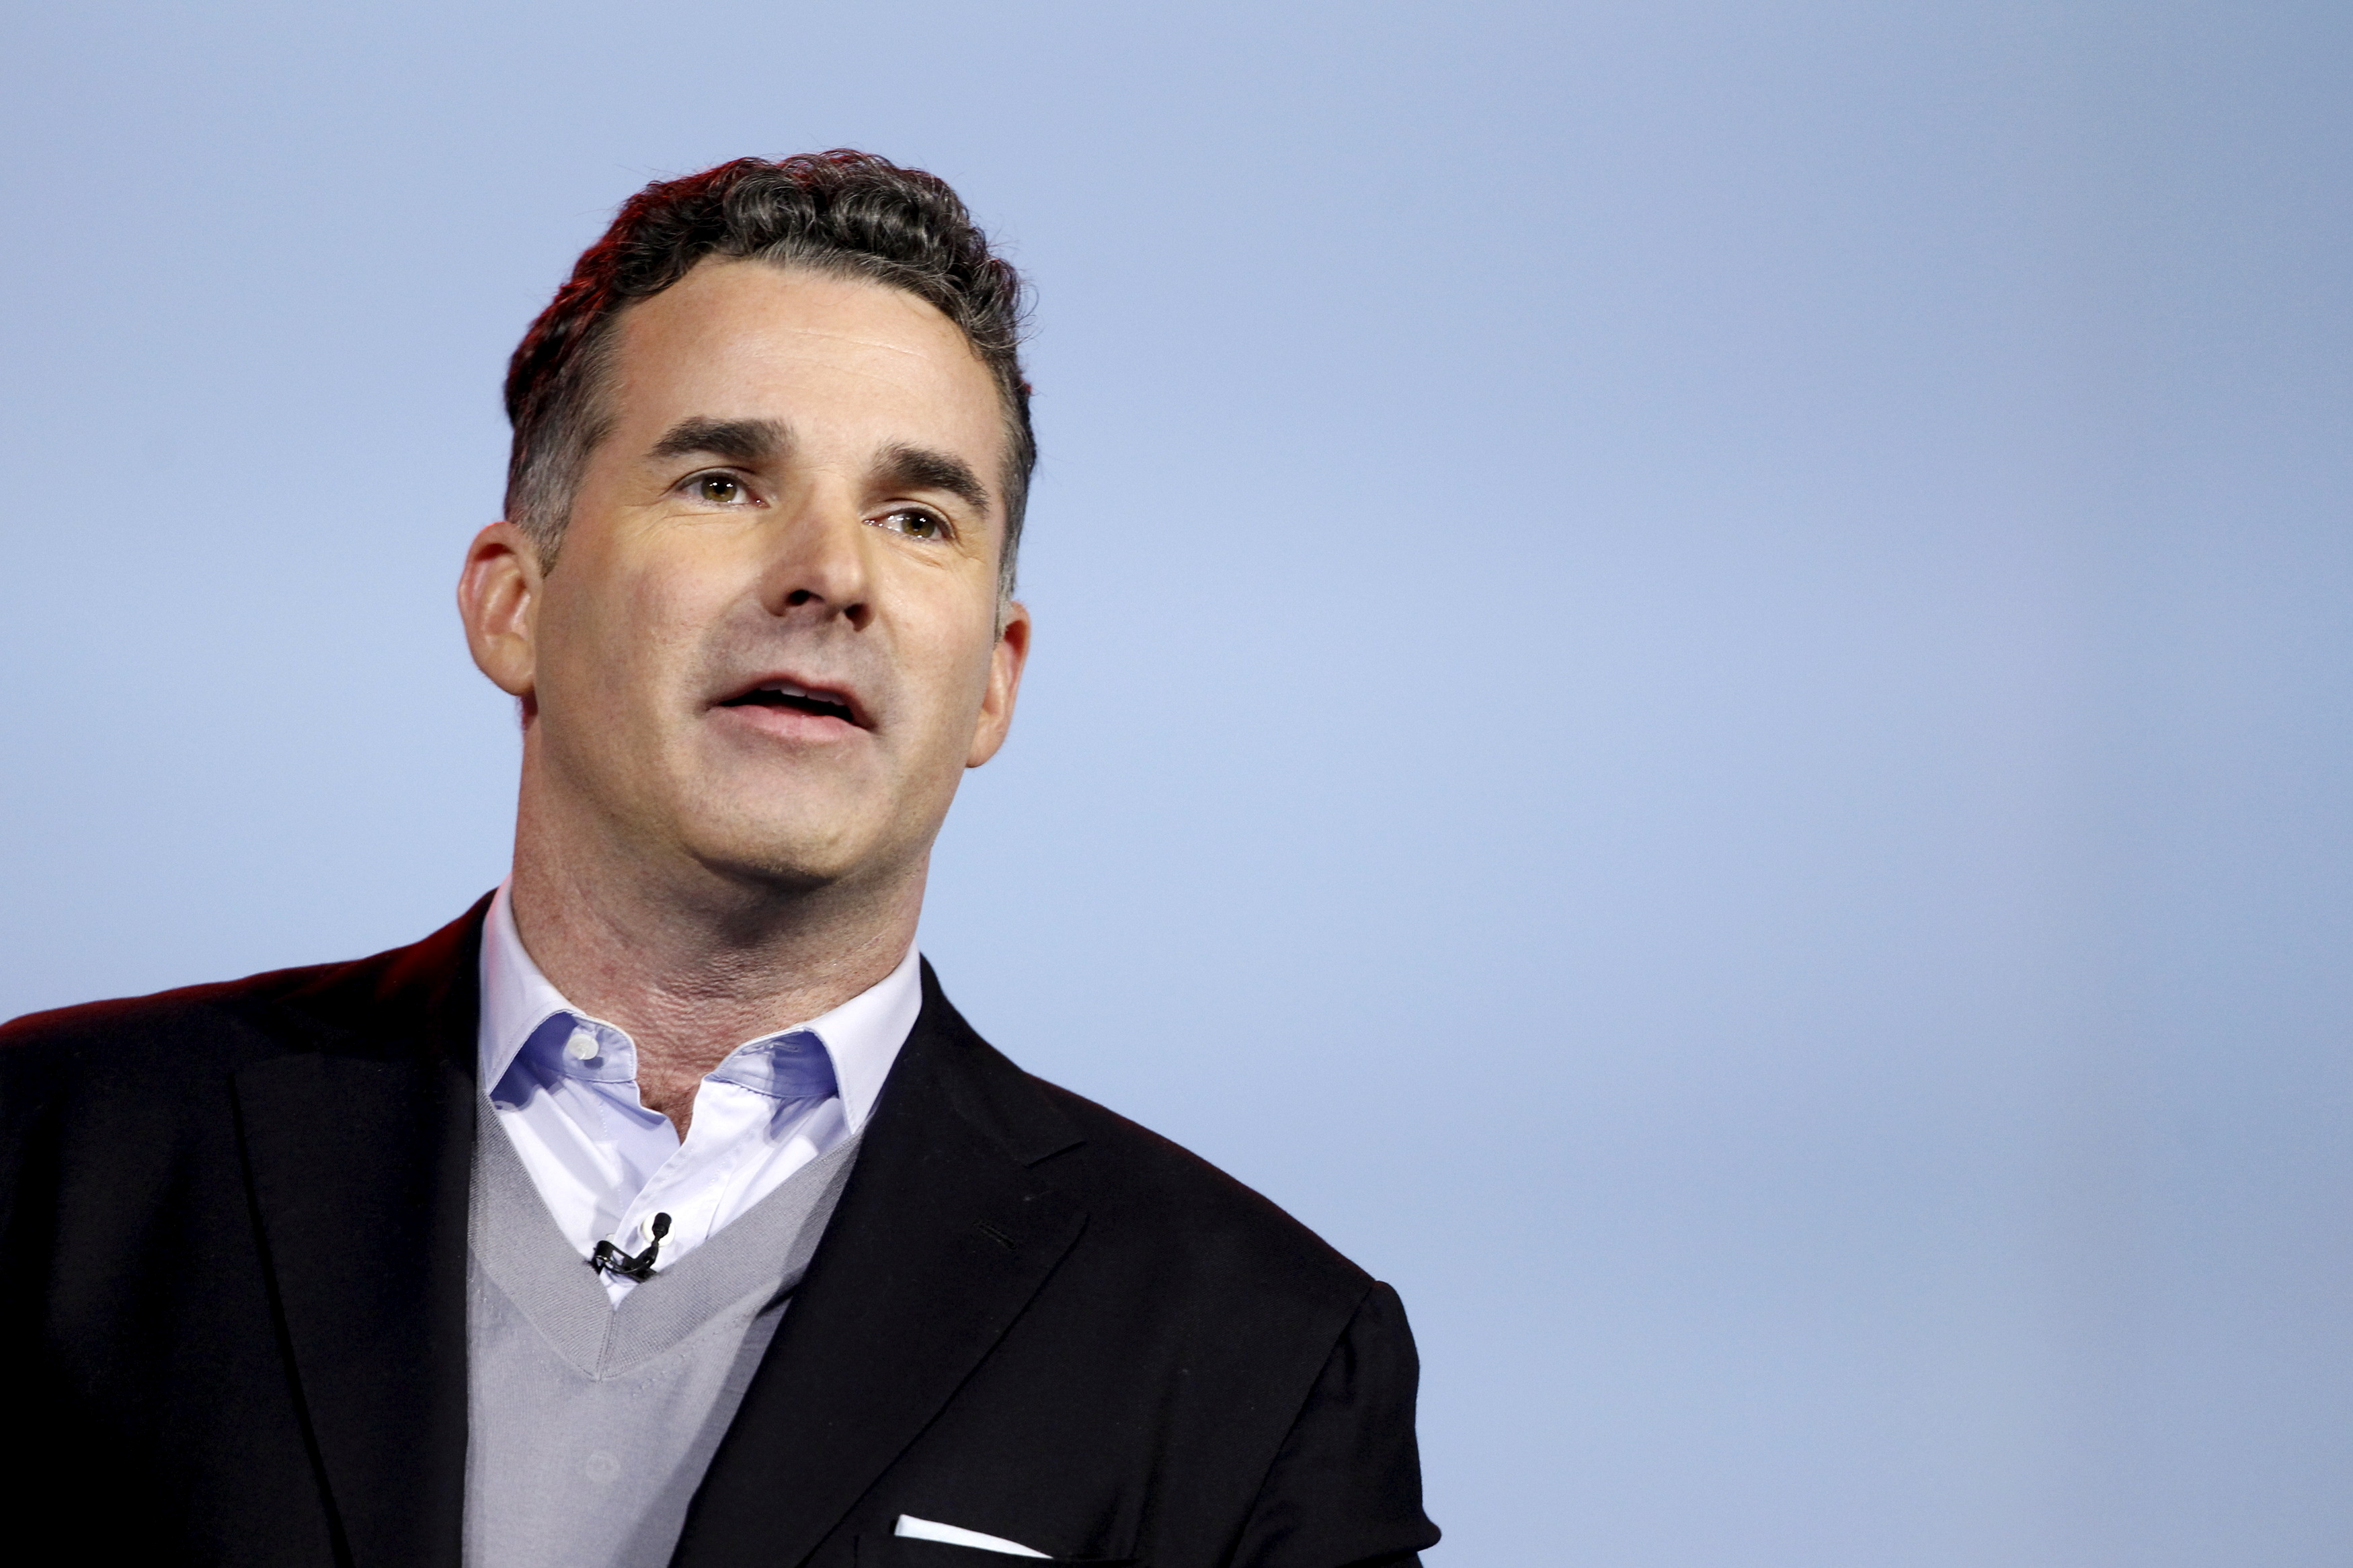 File photo: Founder and CEO of Under Armour Kevin Plank speaks during an IBM keynote address at the 2016 CES trade show in Las Vegas, Nevada, January 6, 2016. REUTERS/Steve Marcus.